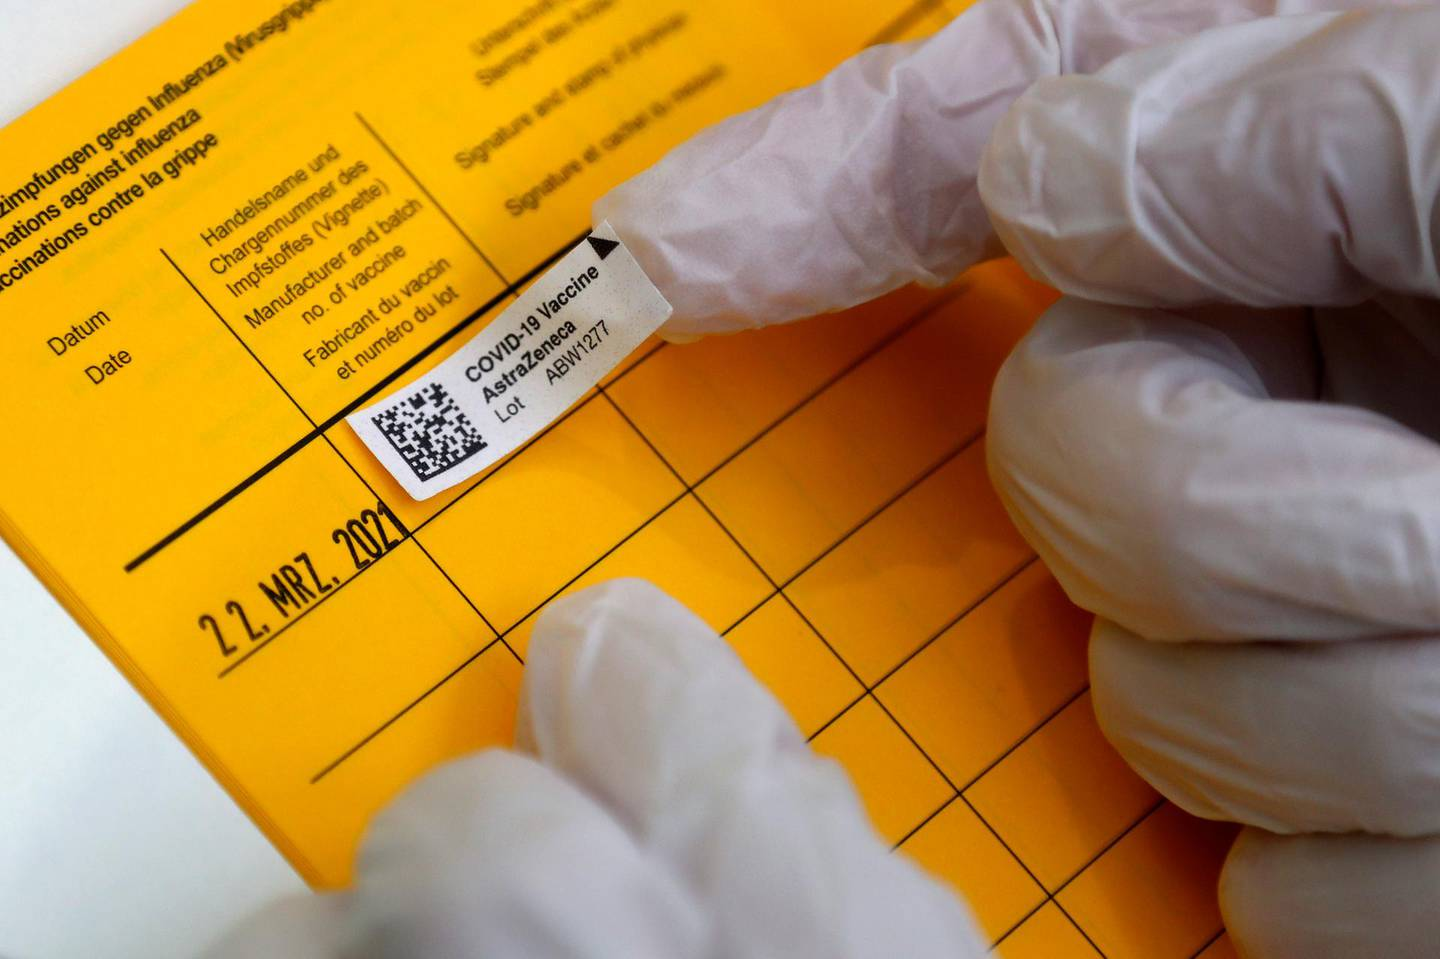 Medical staff fill in a vaccination pass at the local vaccination centre in Ebersberg near Munich, Germany, Monday, March 22, 2021. (AP Photo/Matthias Schrader)